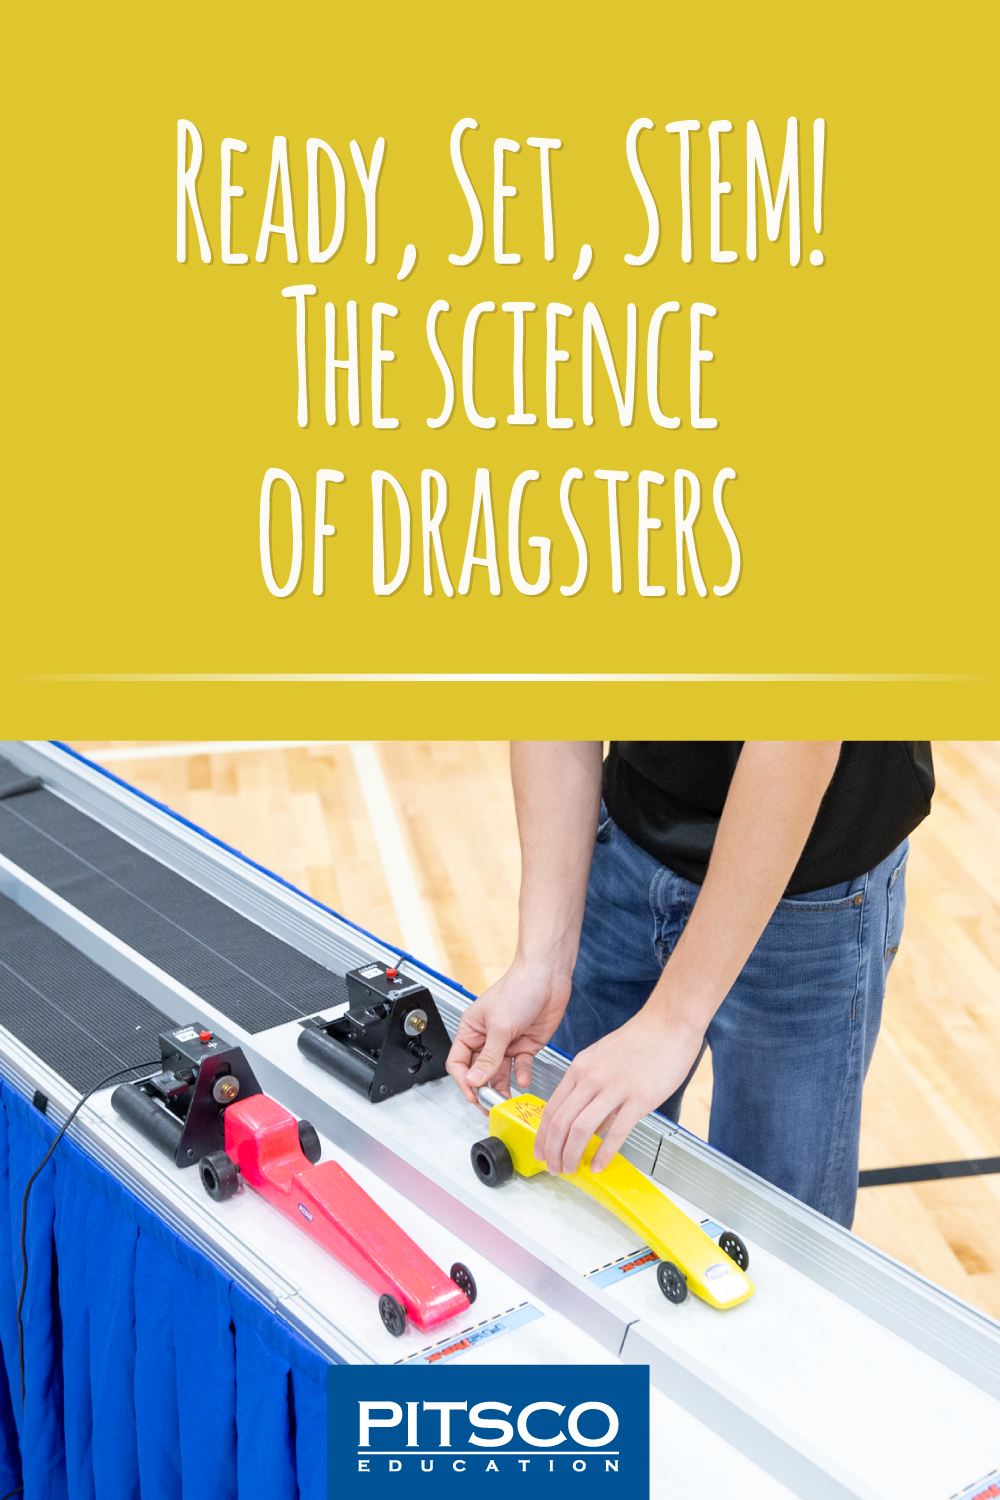 The-Science-of-Dragsters-1000-0621